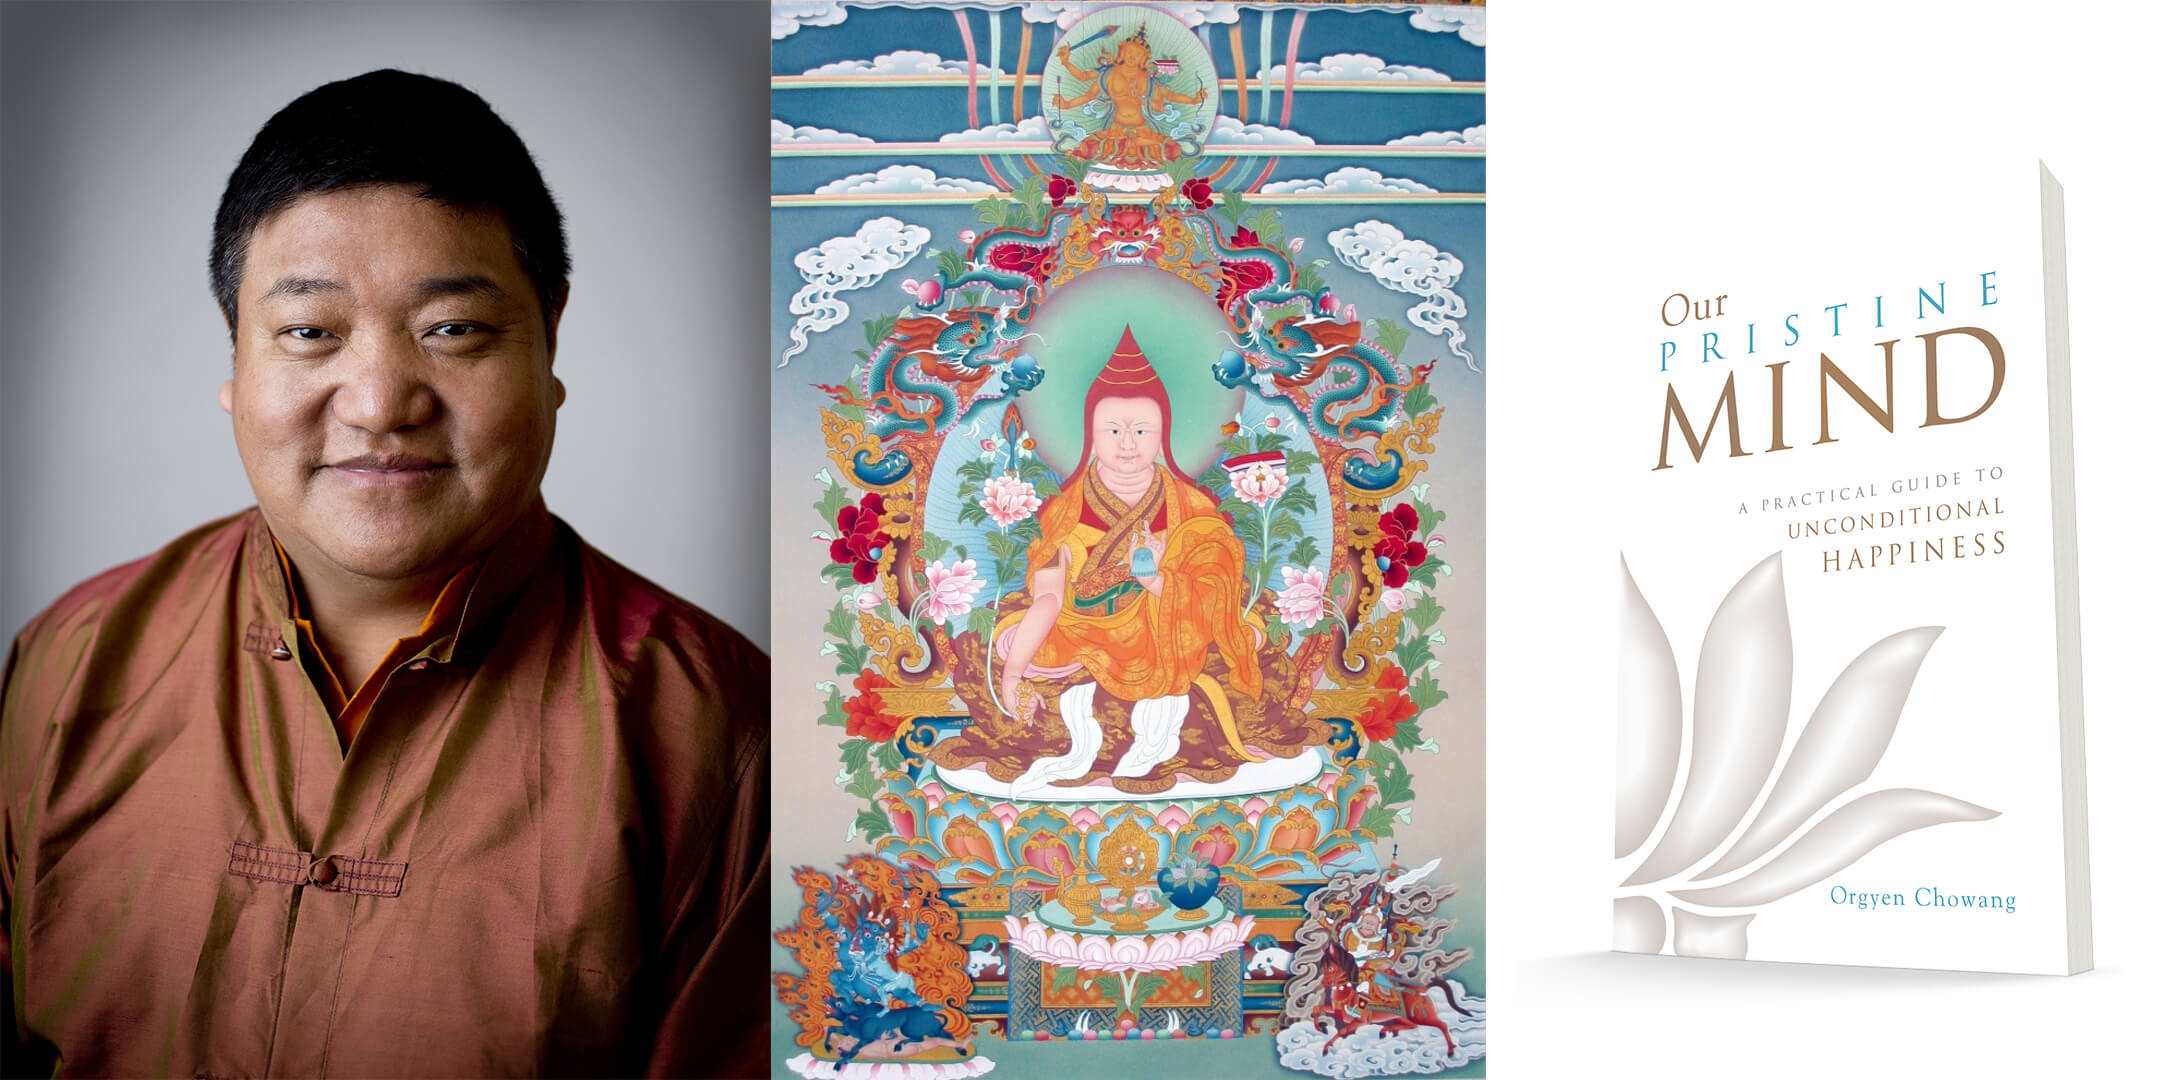 Padmasambhava's Seven-Line Prayer as a Path to Uncovering Our Pristine Mind